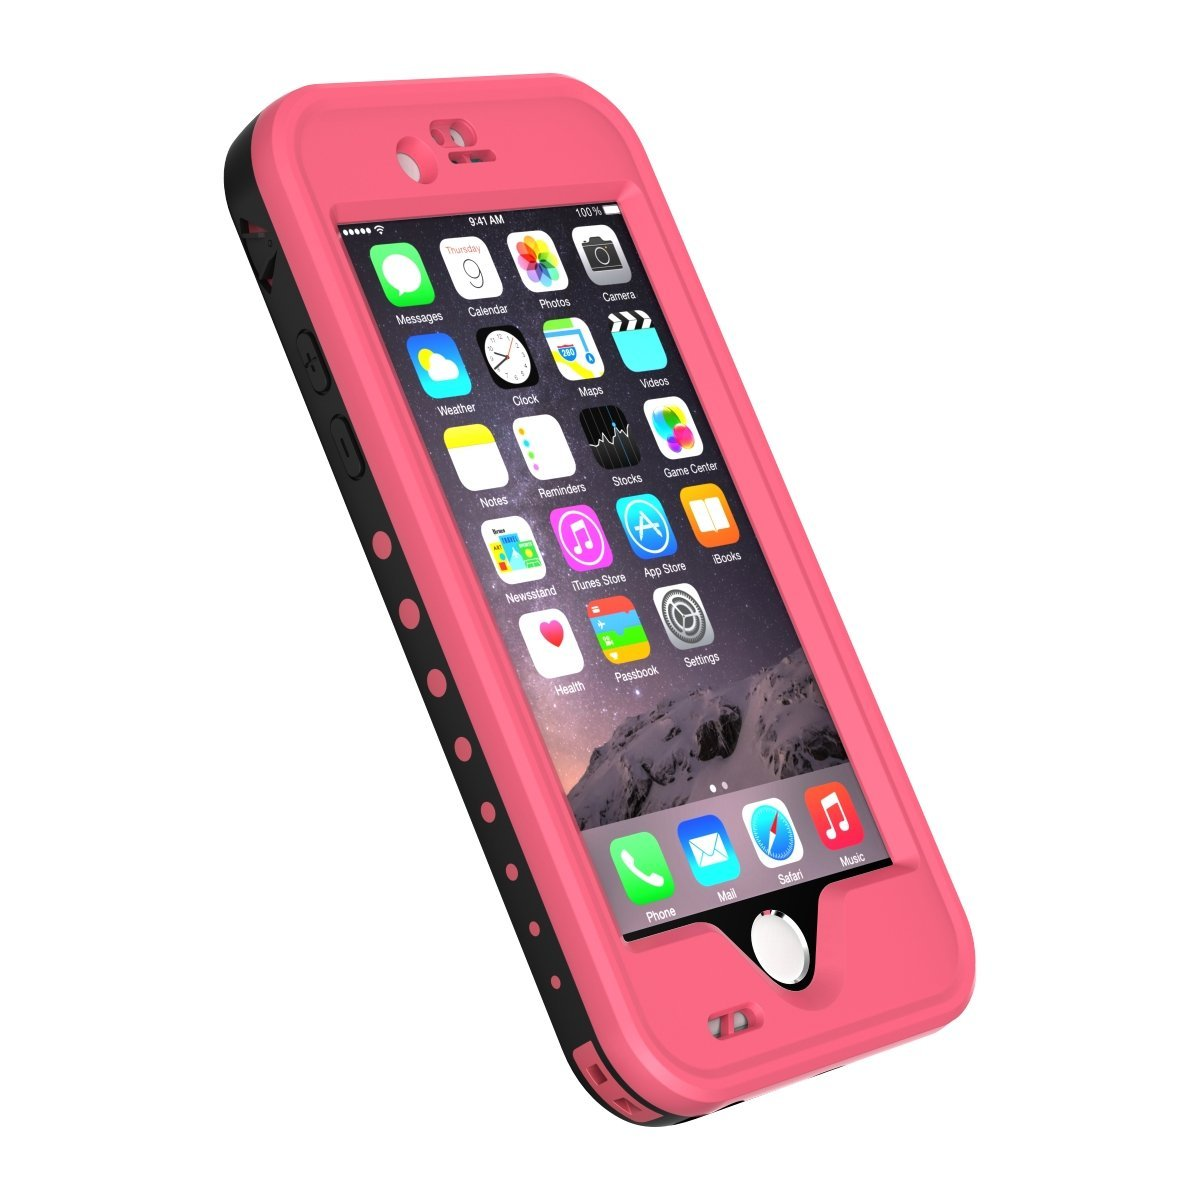 buy popular 8cc05 edc17 Cheap Pink Waterproof Iphone Case, find Pink Waterproof Iphone Case ...